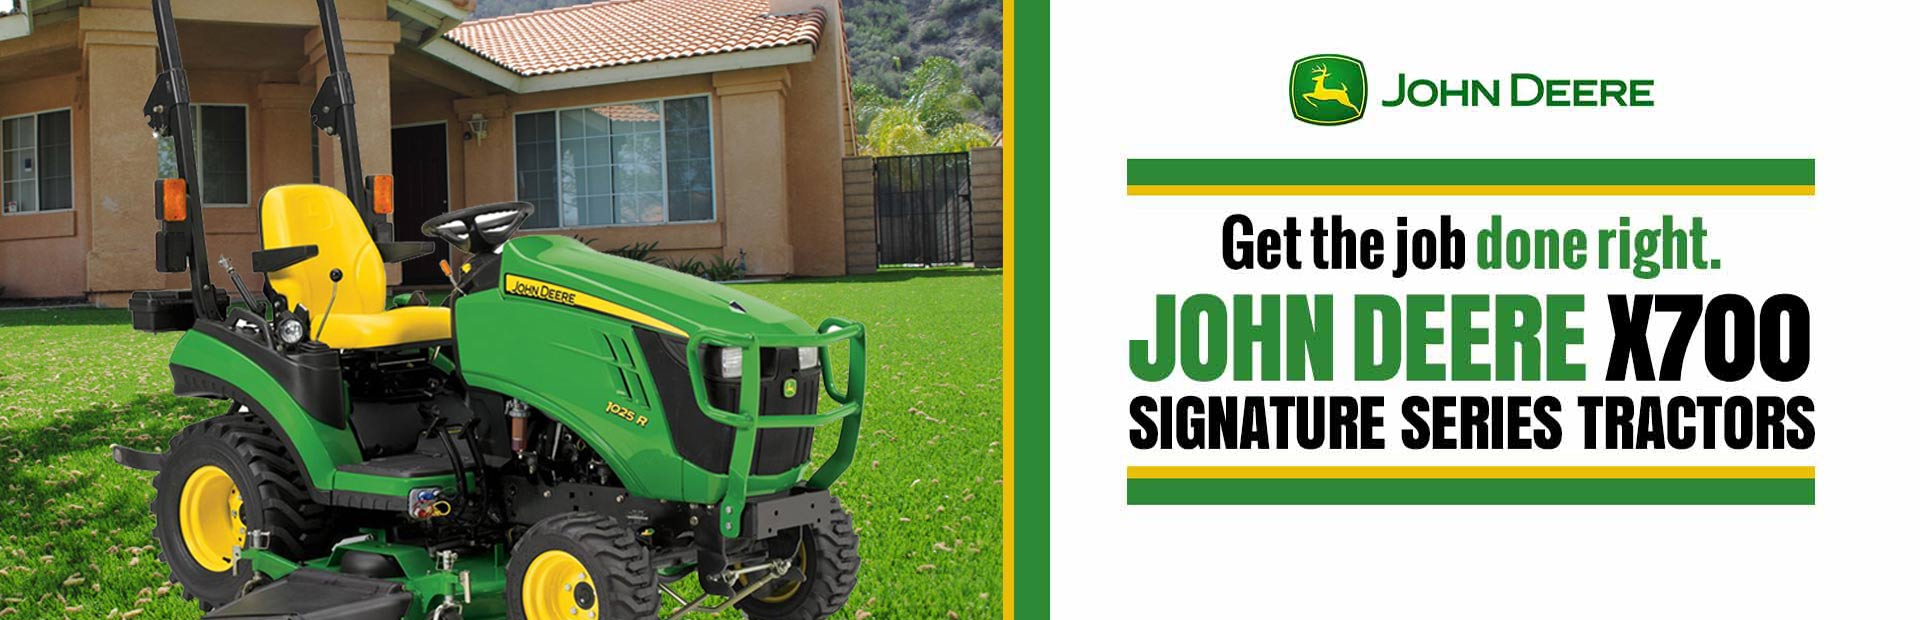 John Deere X700 Signature Series Tractors: Click here to view the models.